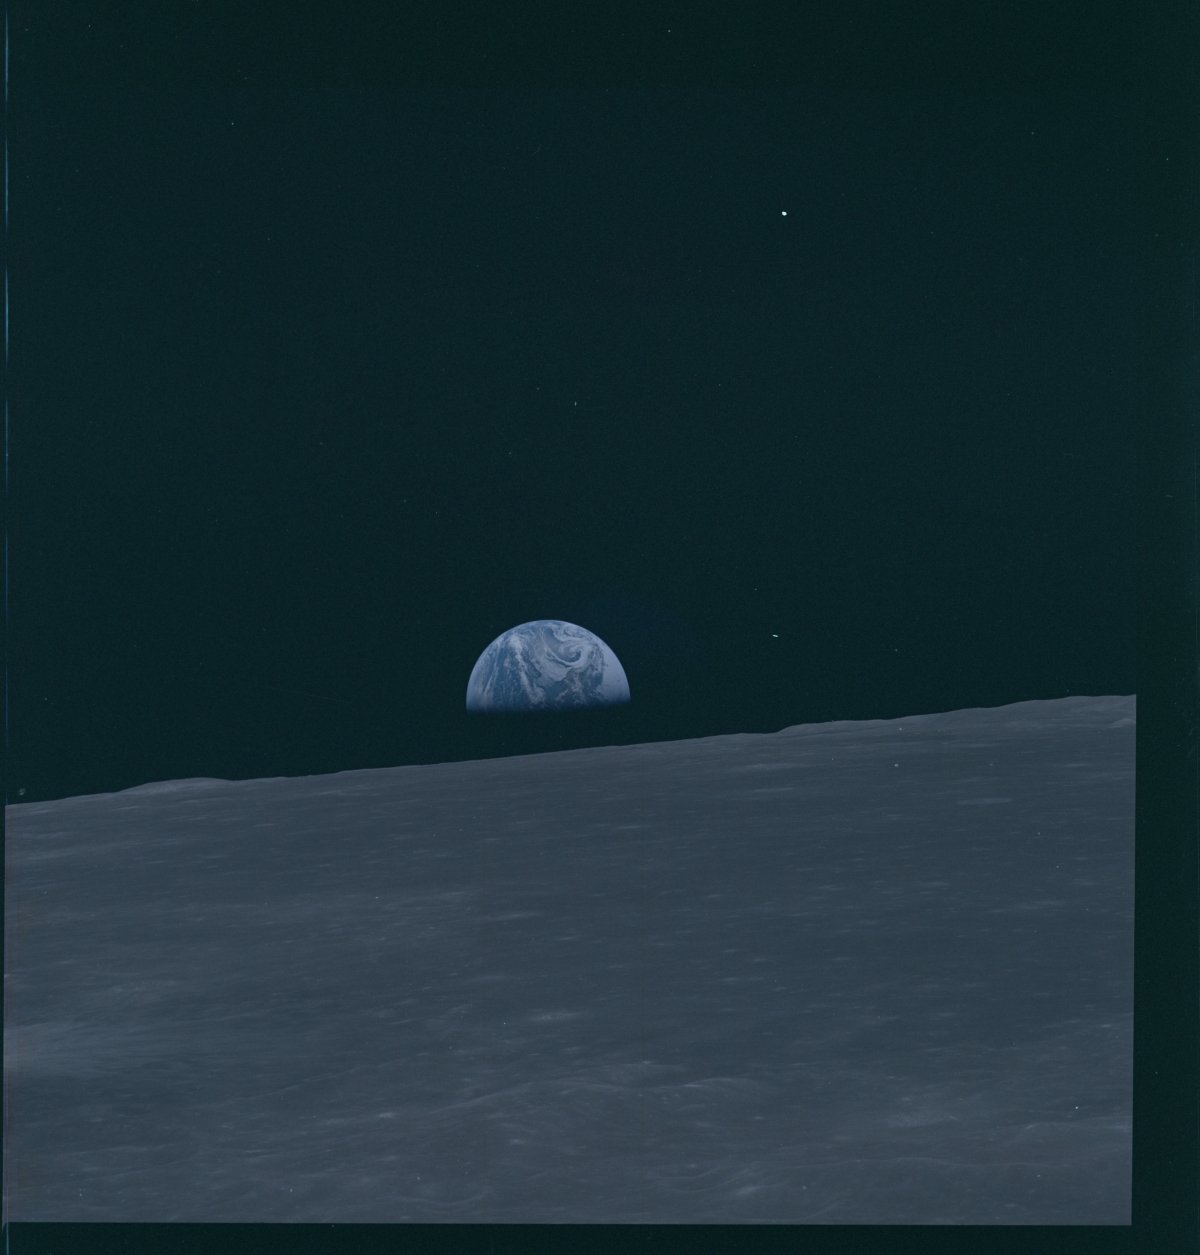 nasa archive photos of moon - photo #12